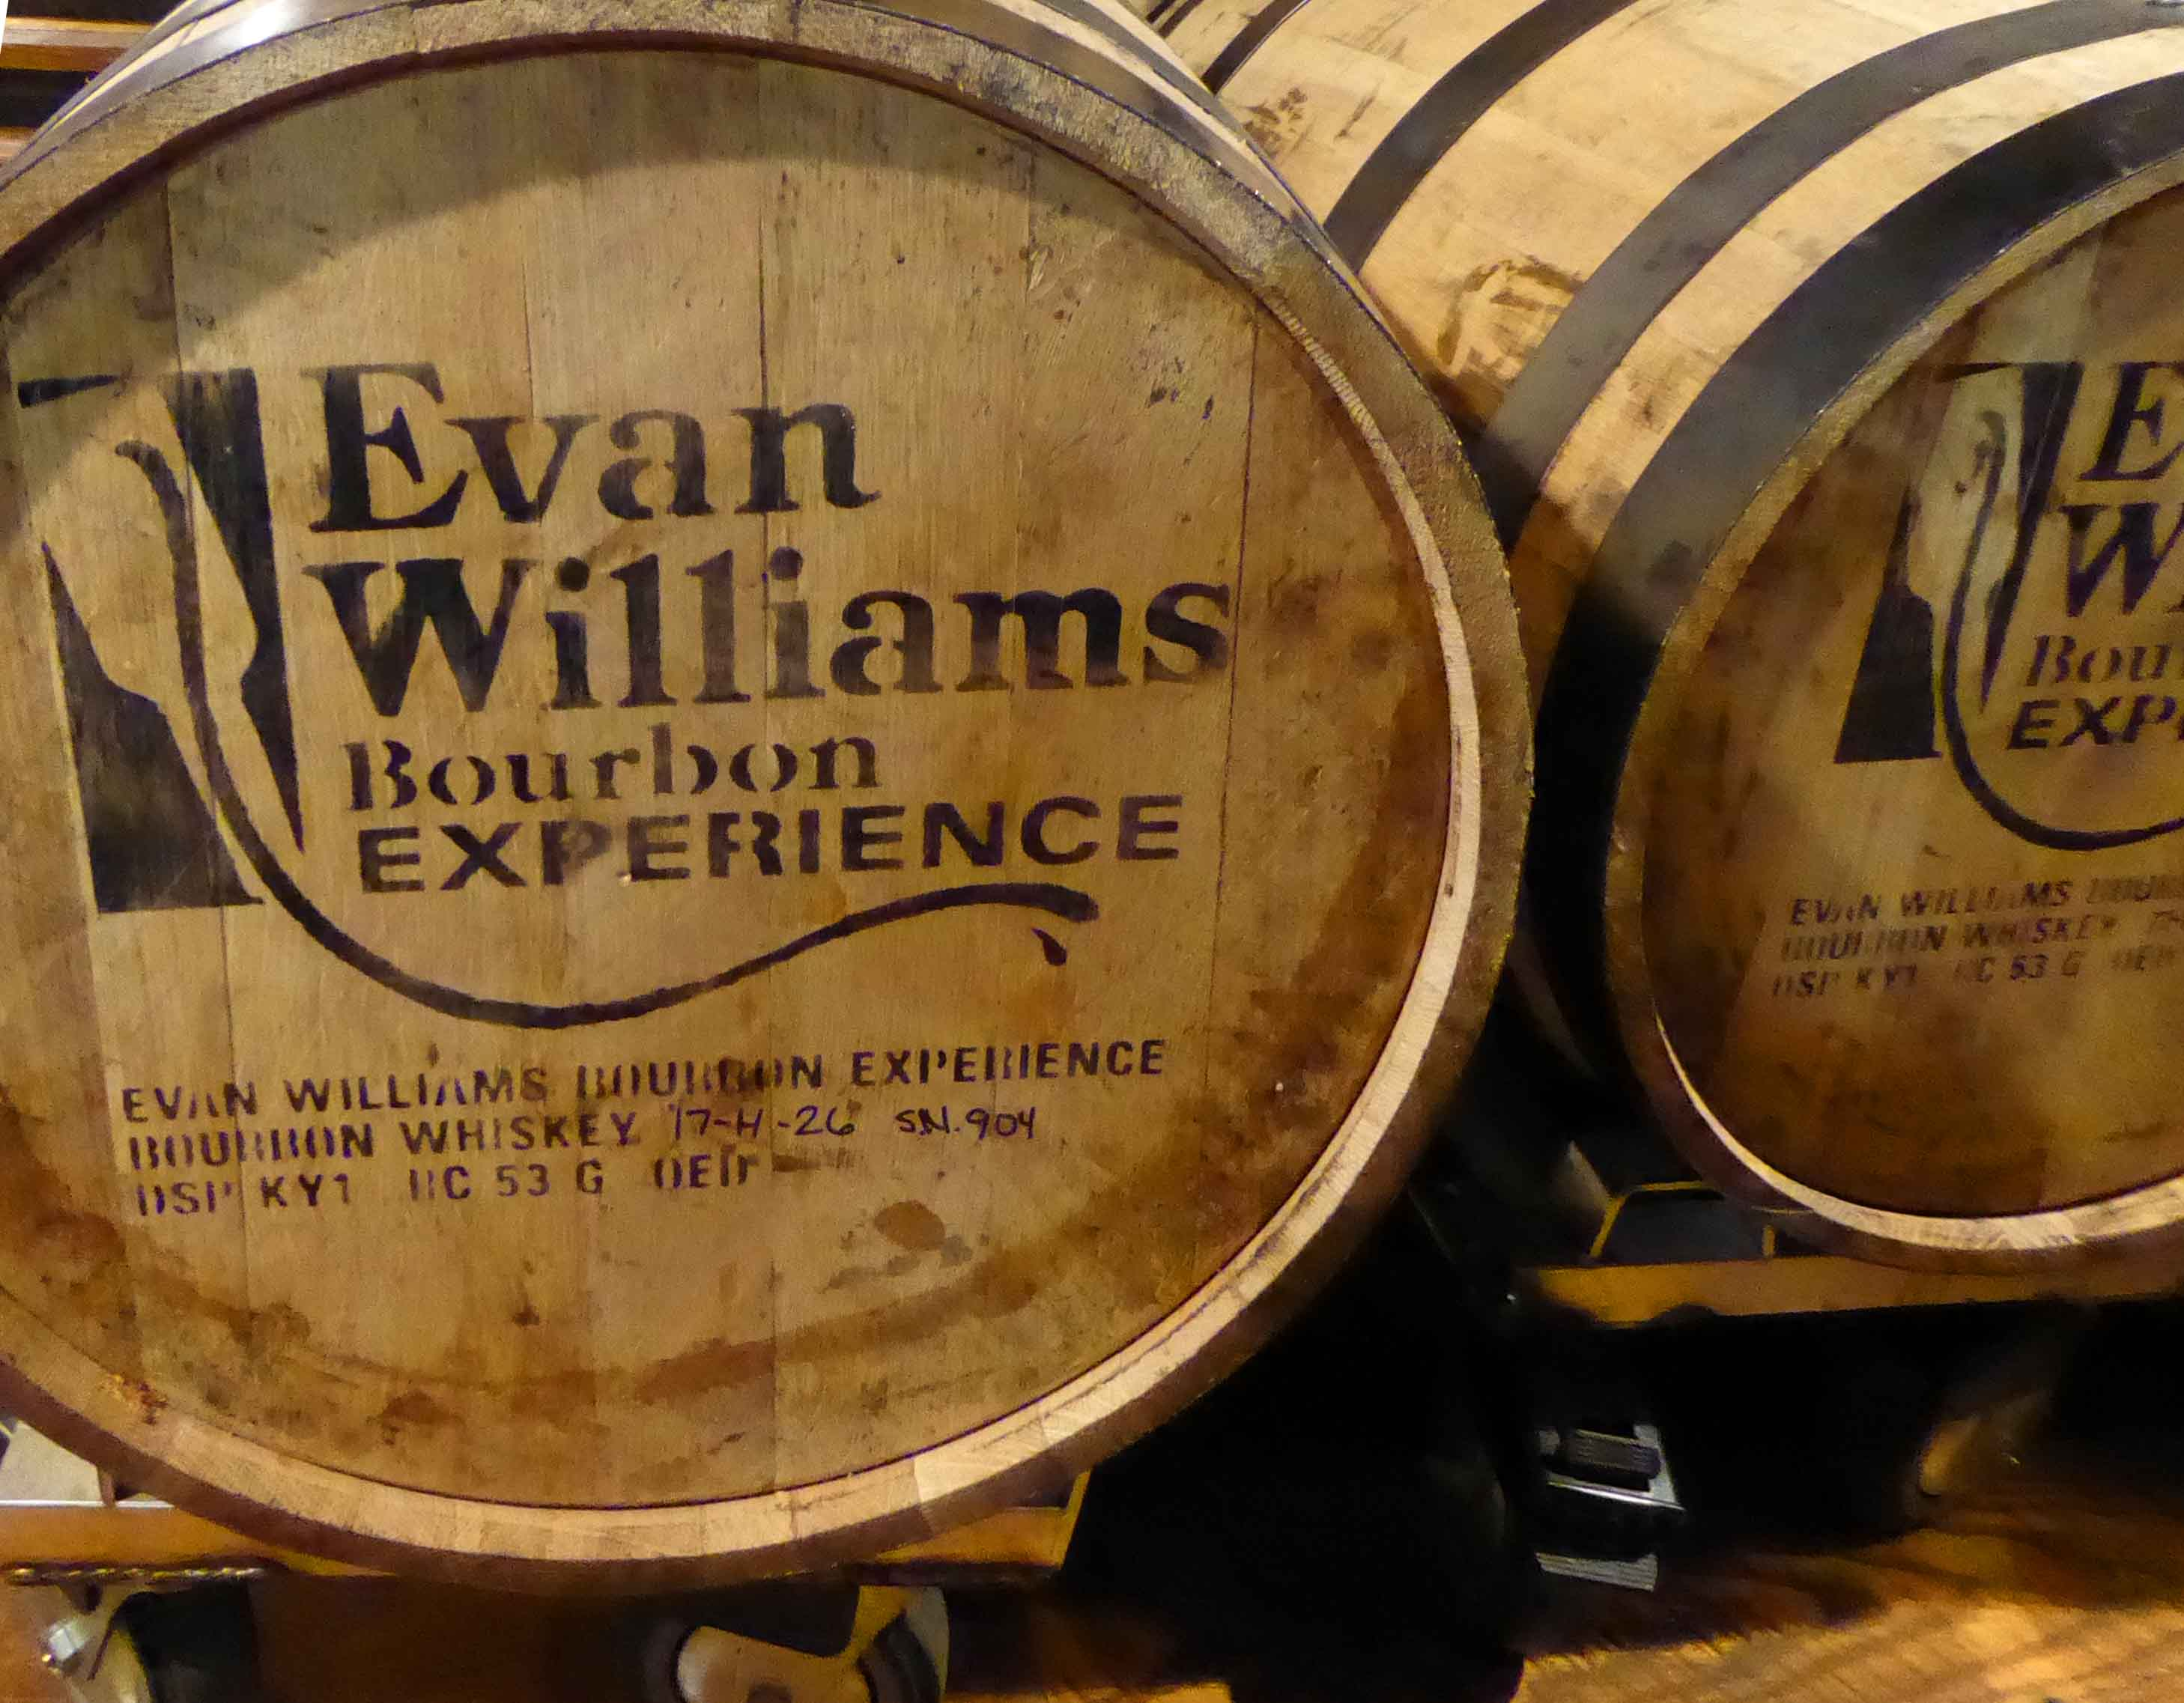 Evan Williams bourbon barrels